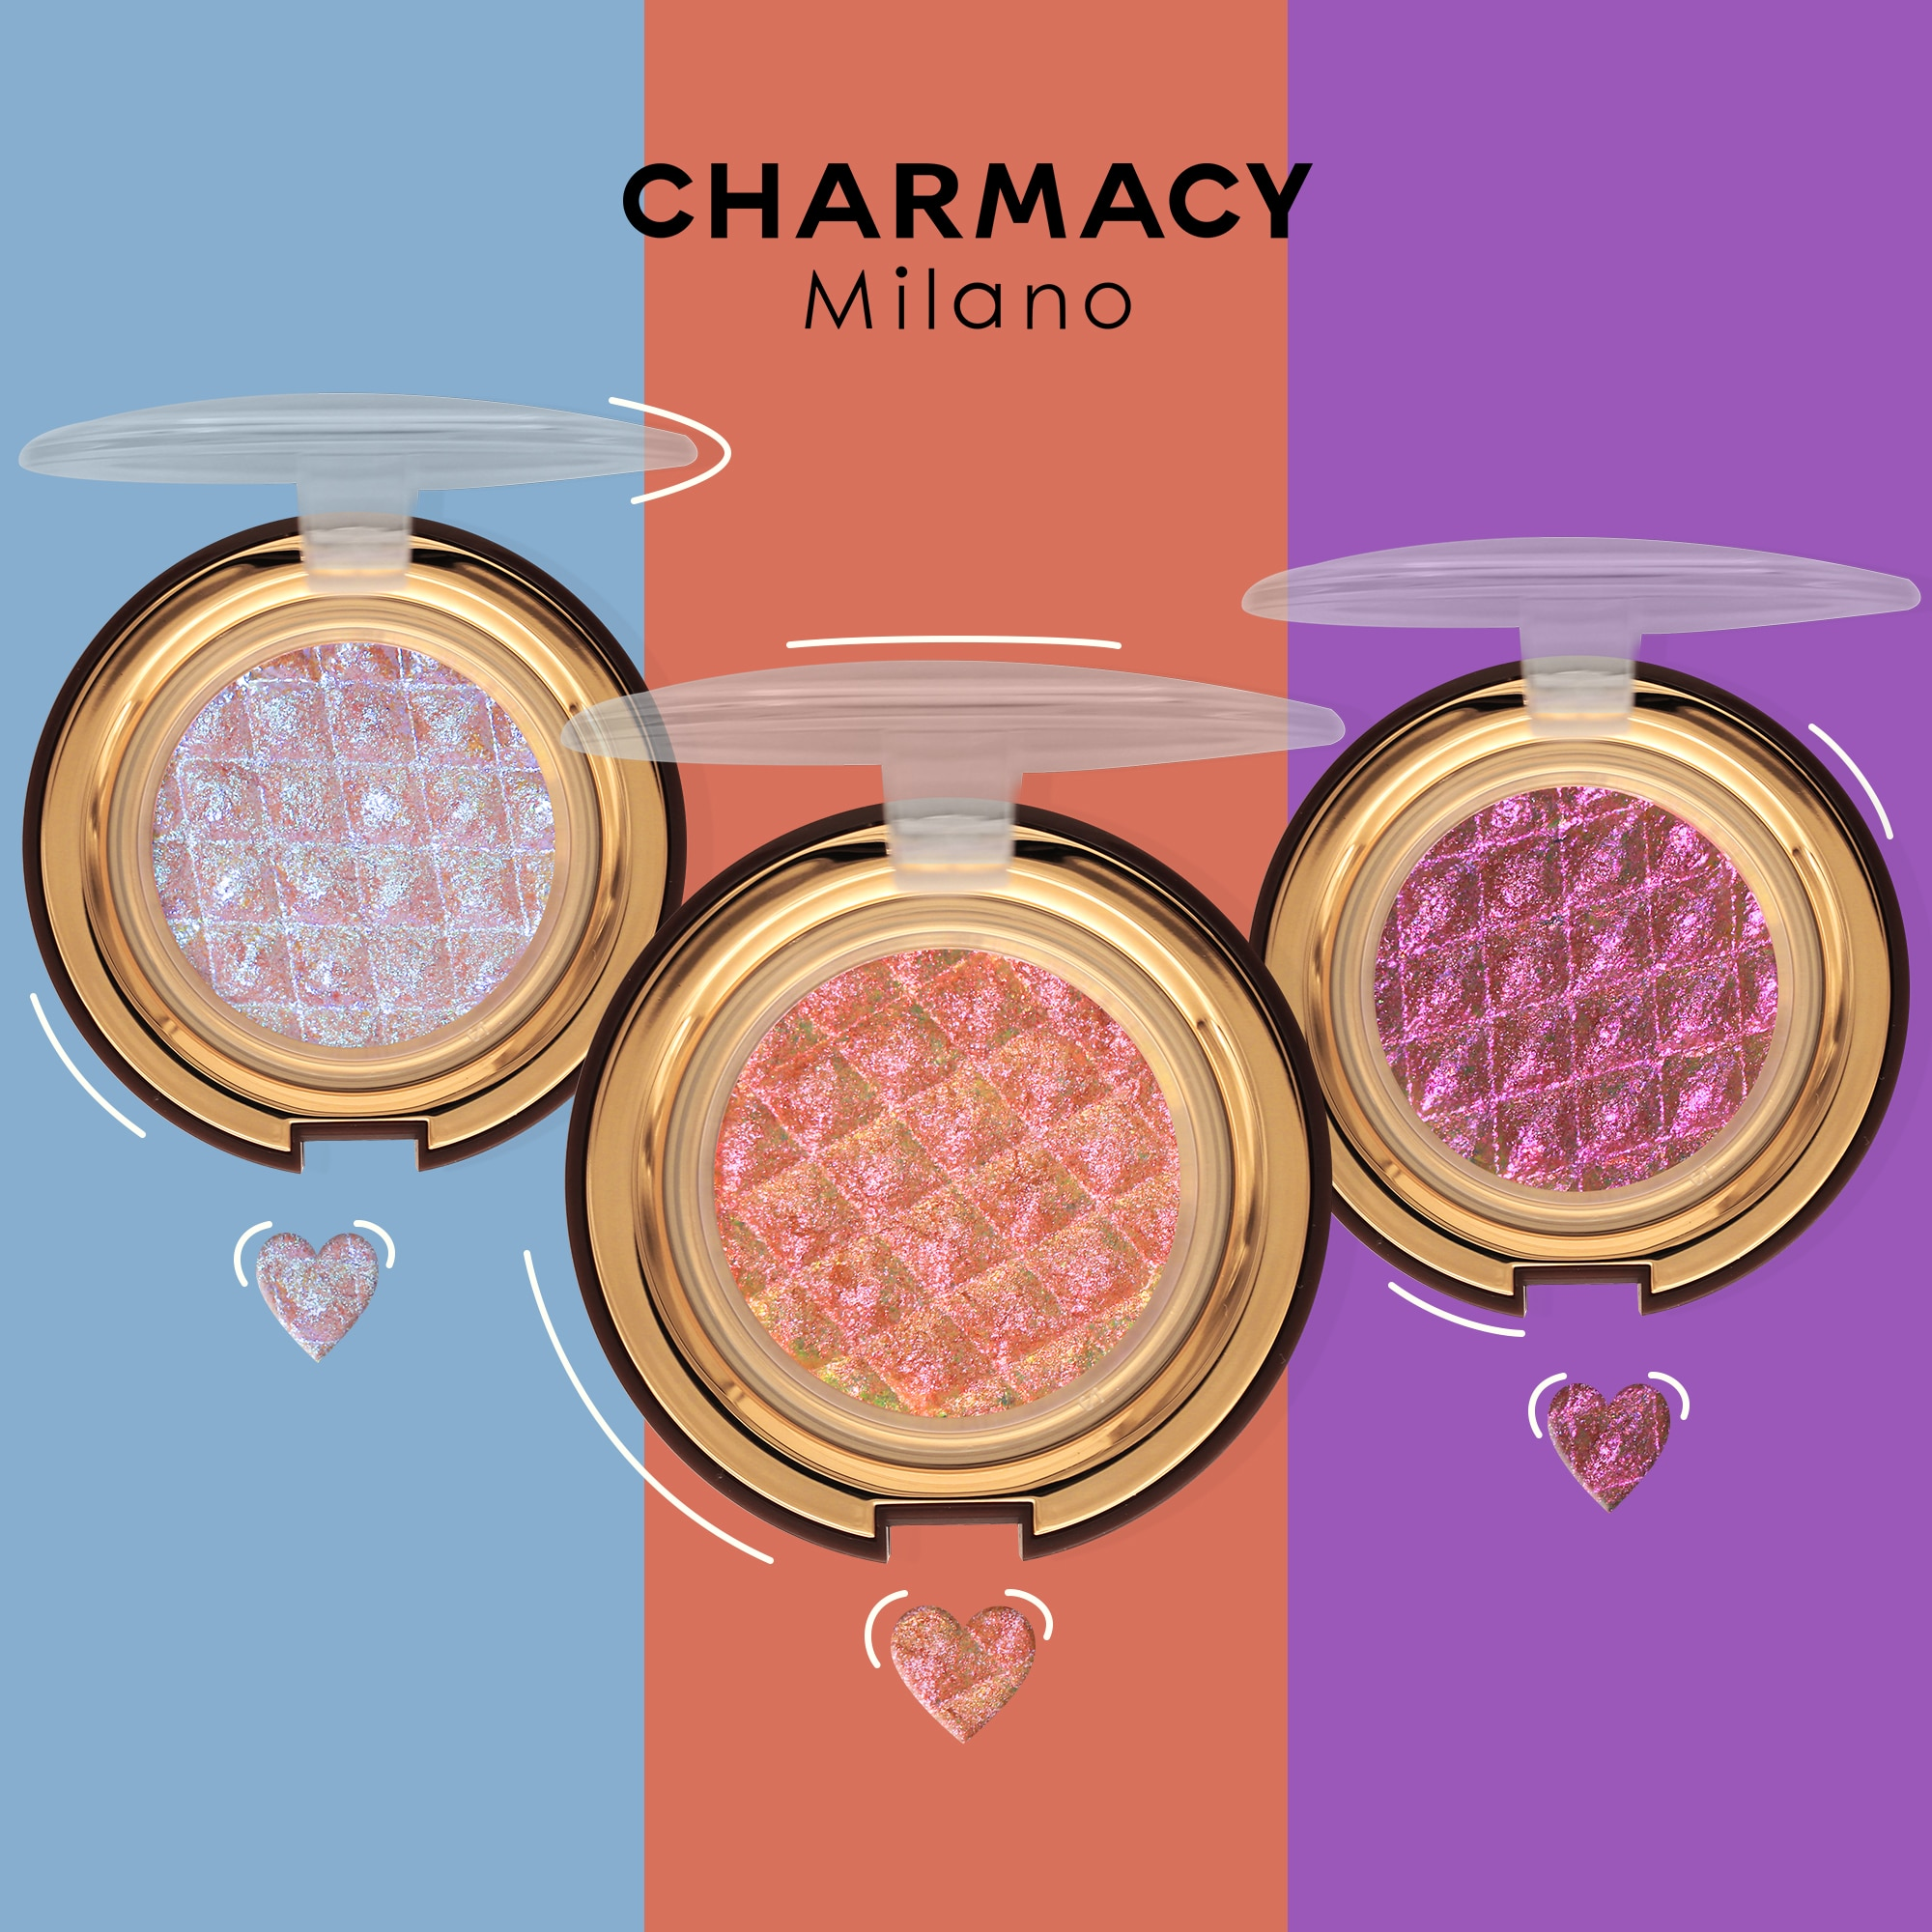 CHARMACY Shiny Eyeshadow Highlighter Make Up Contour Face Body Bright Cosmetic Chameleon Duochrome Glitter Eyeshadow Makeup